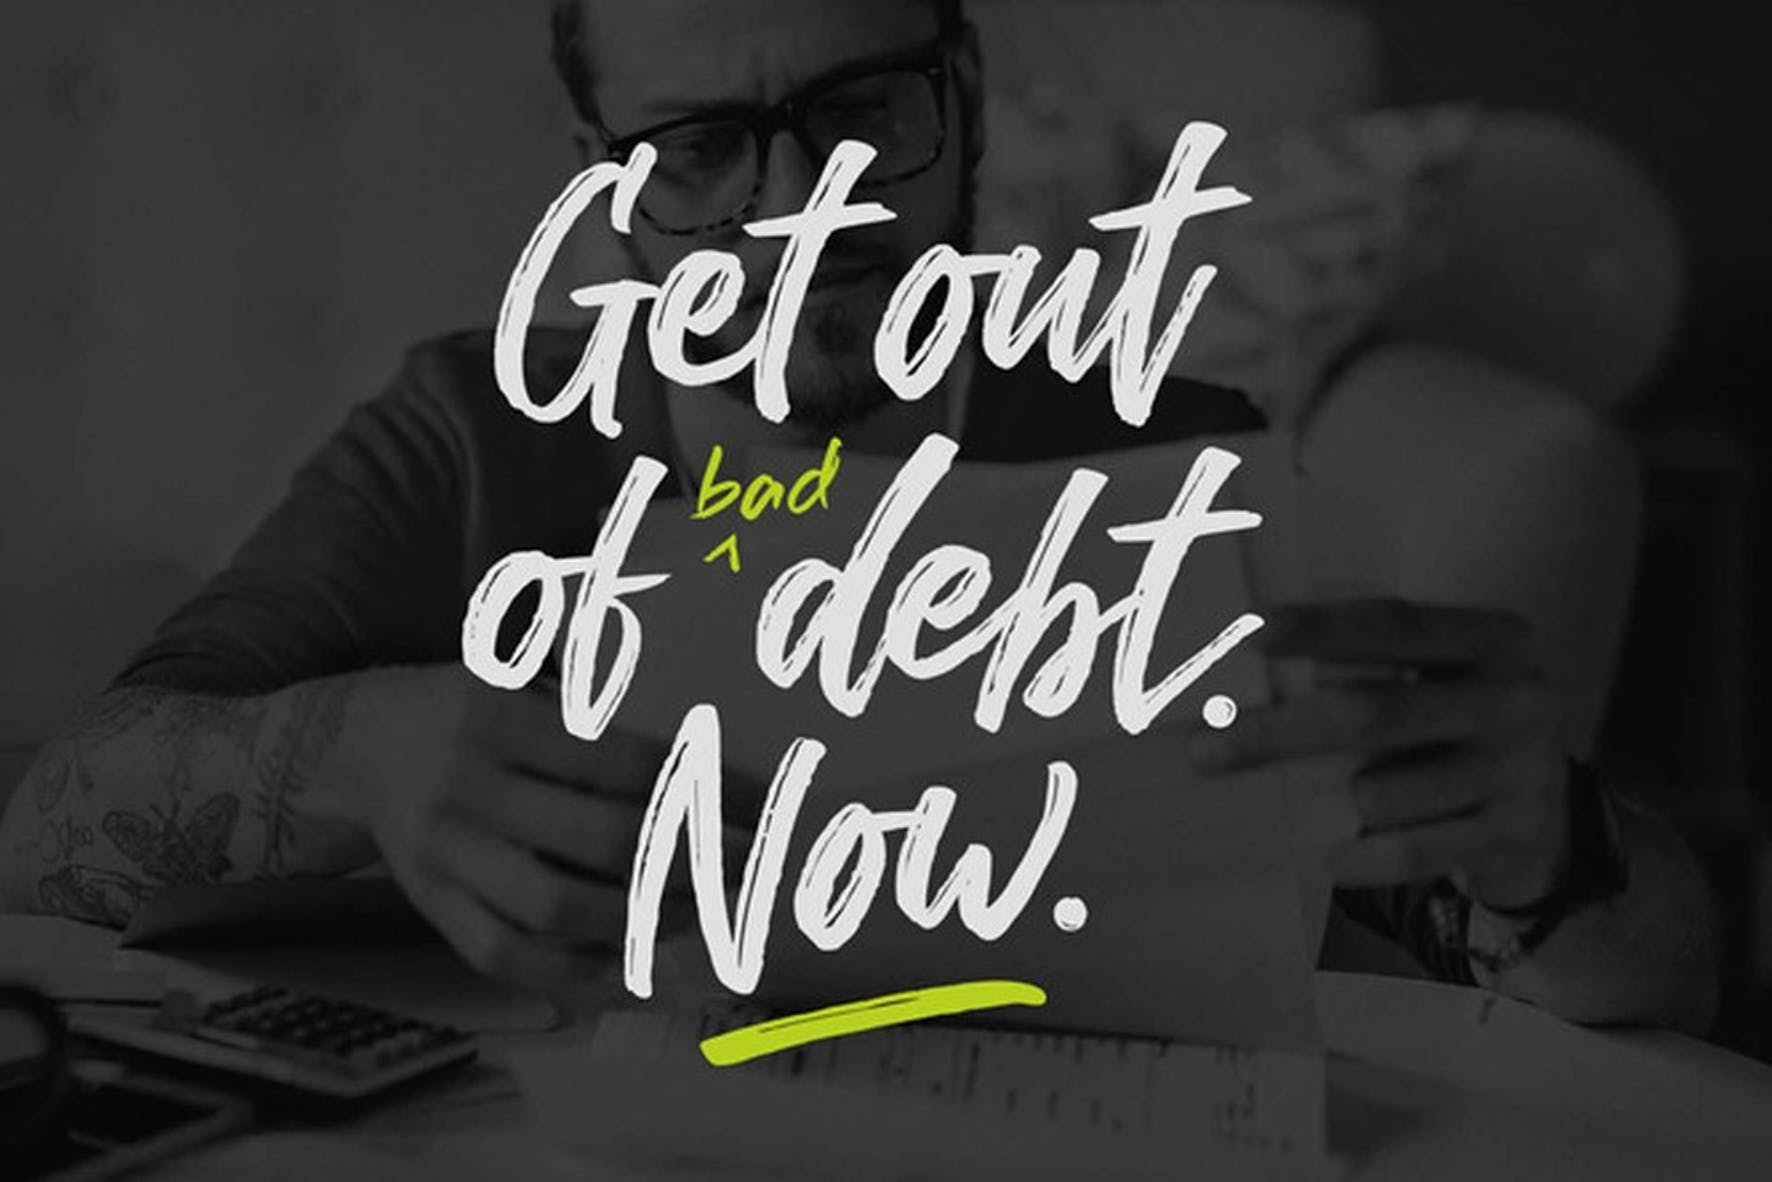 Identifying your biggest money issues and finding help with a free consumer credit counselor